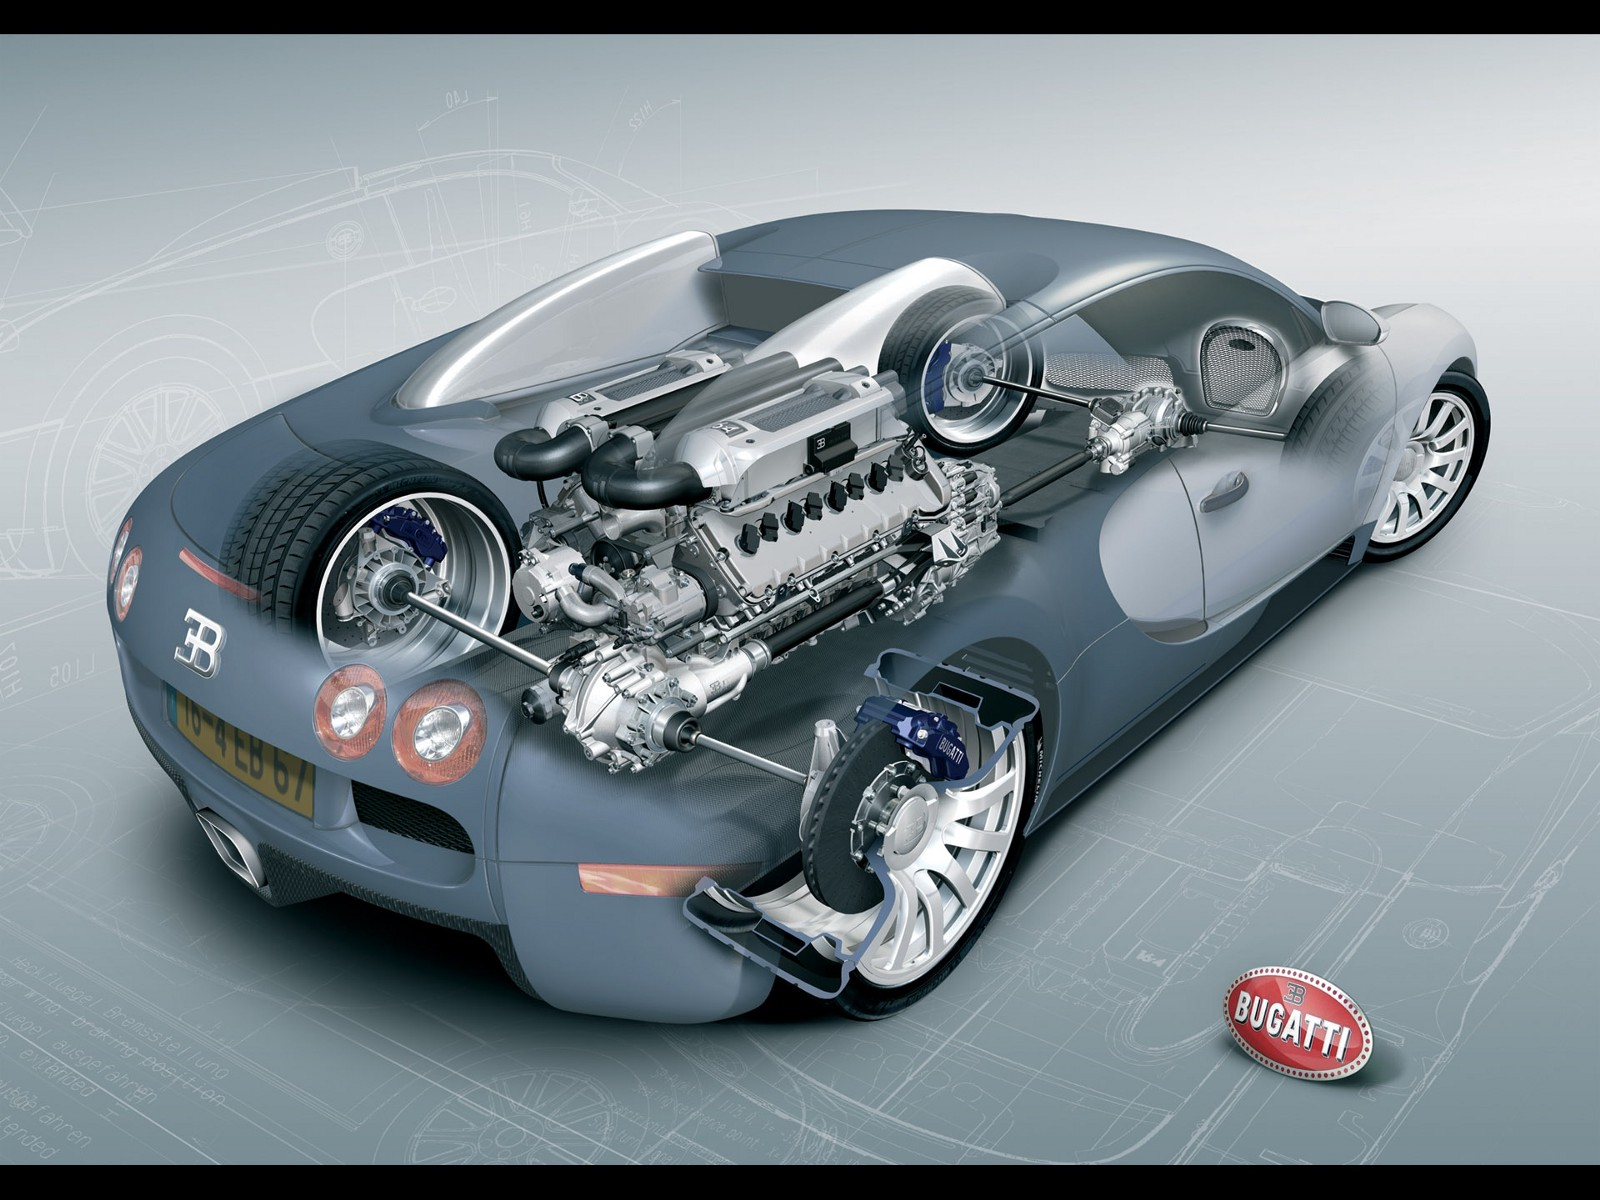 What kind of engine does a bugatti have